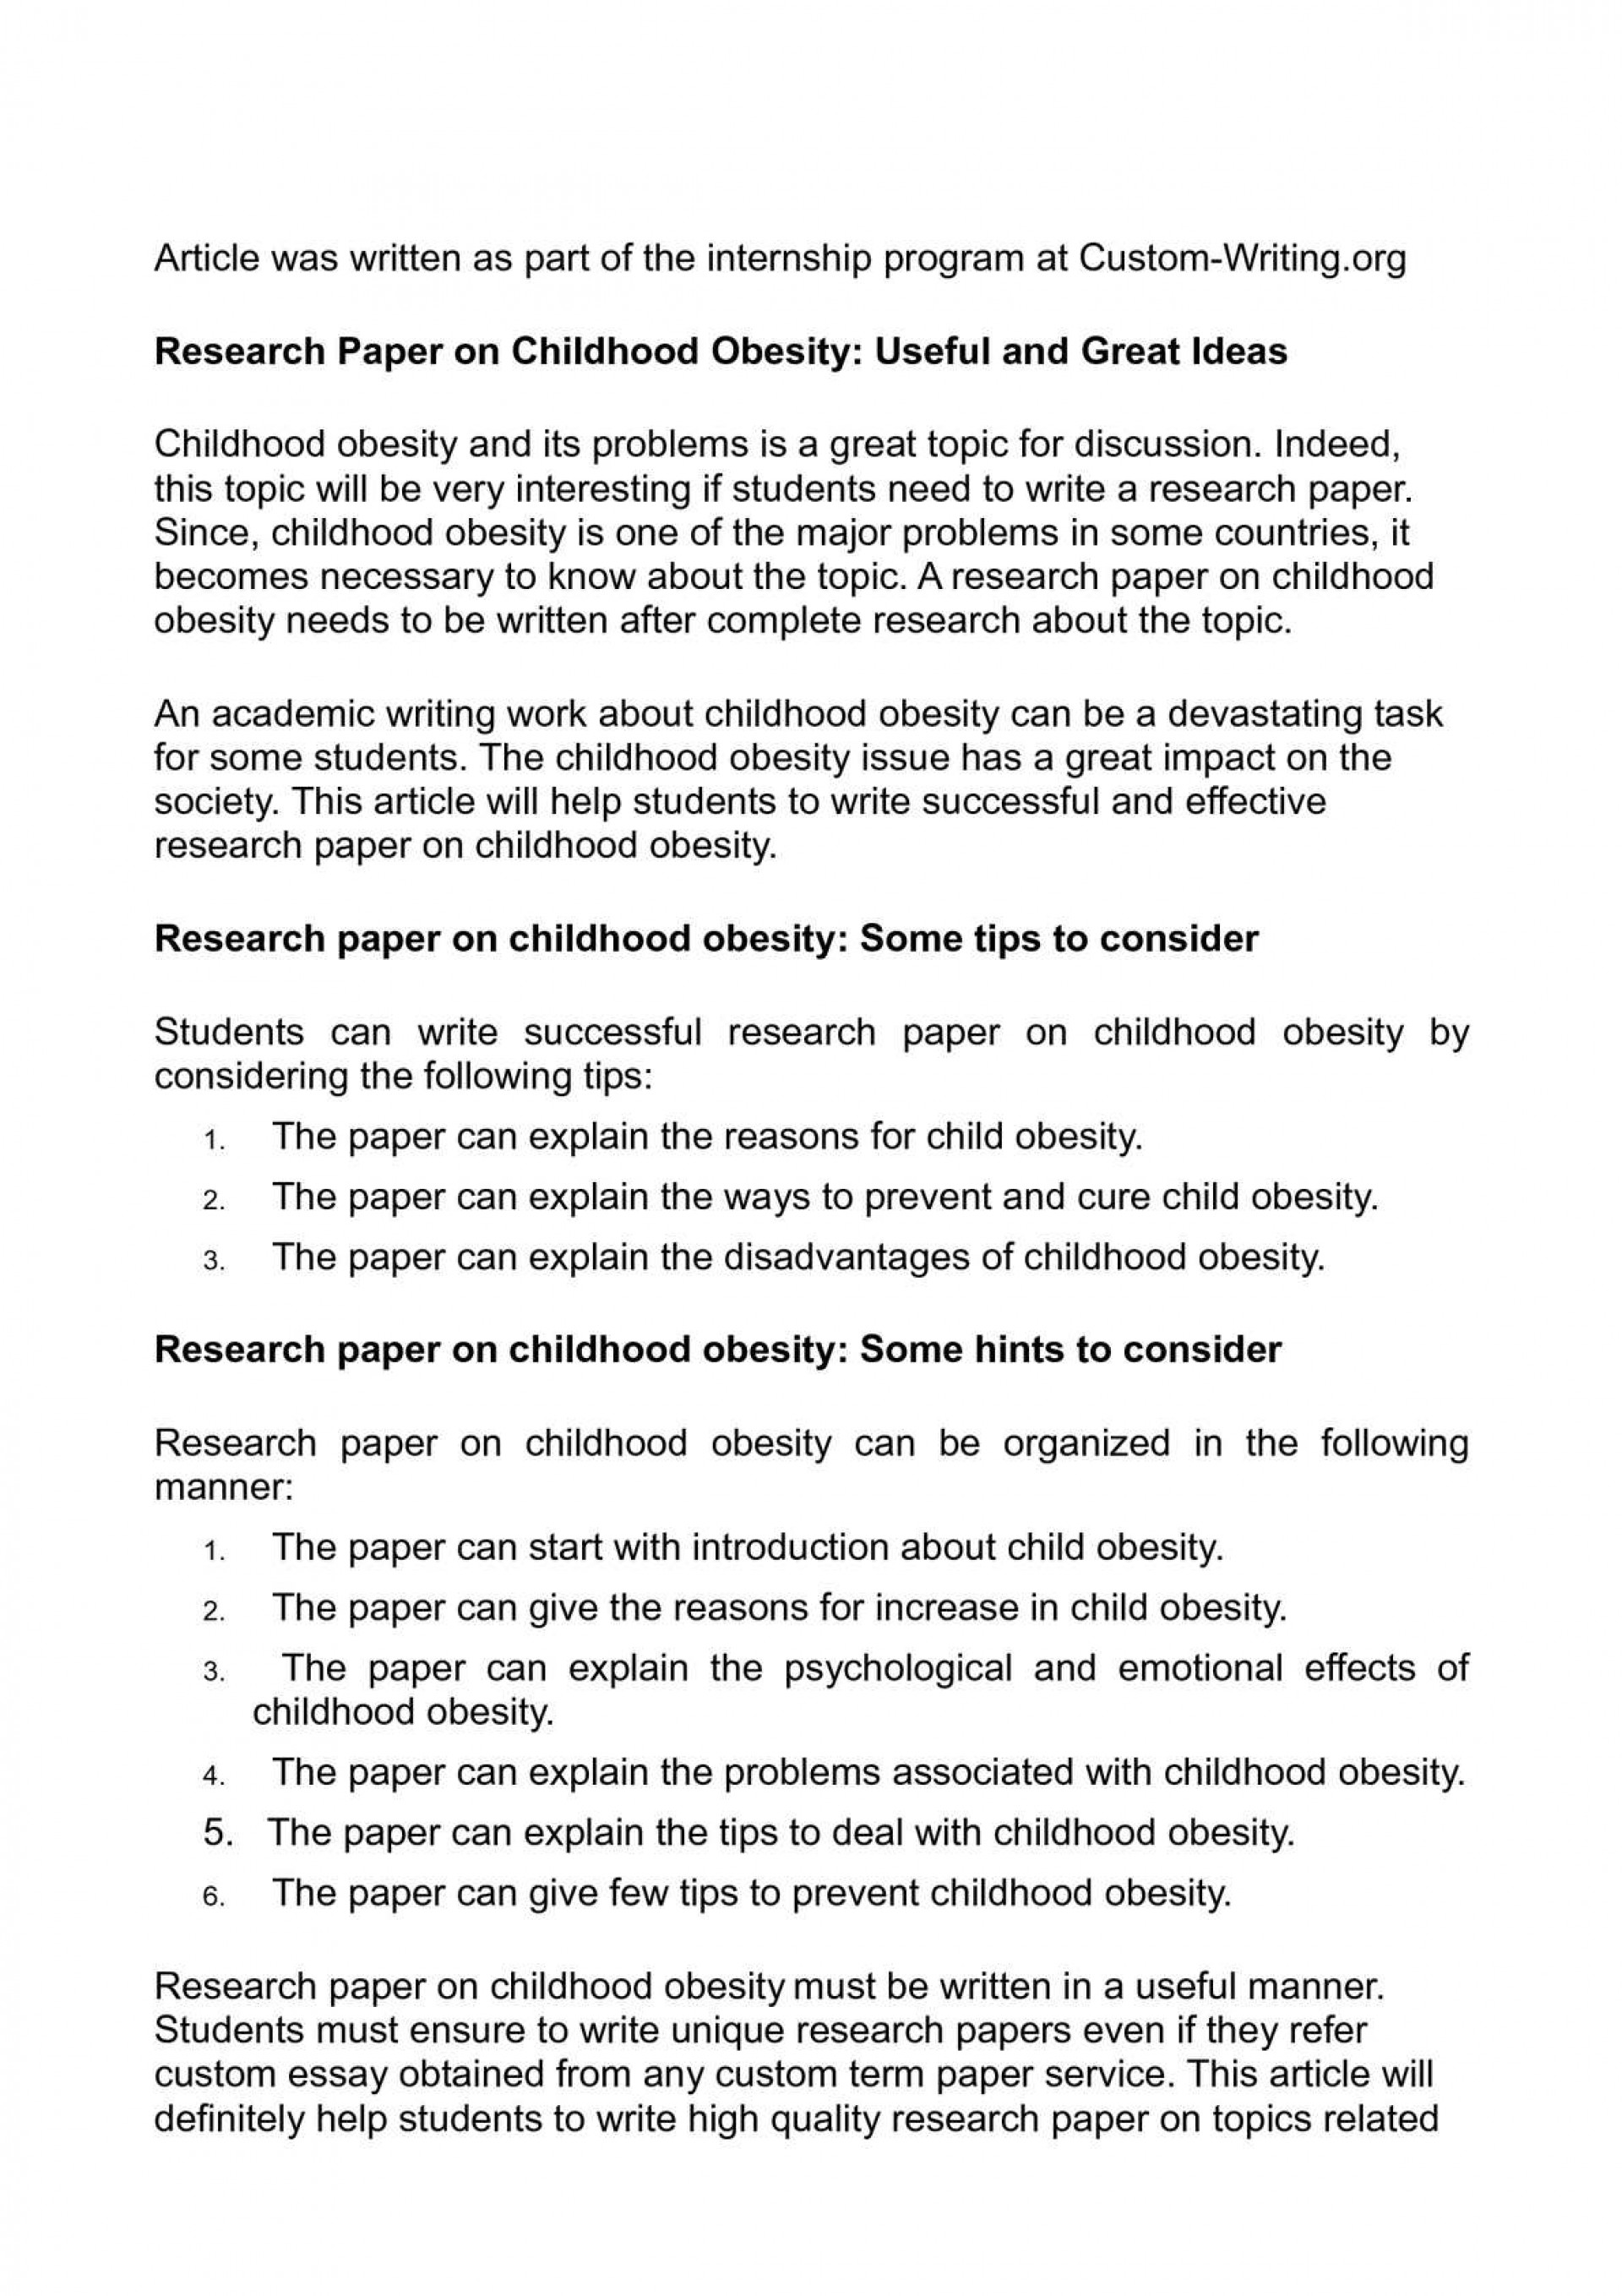 001 Childhood Obesity Research Paper Thesis Statement Fantastic 1920